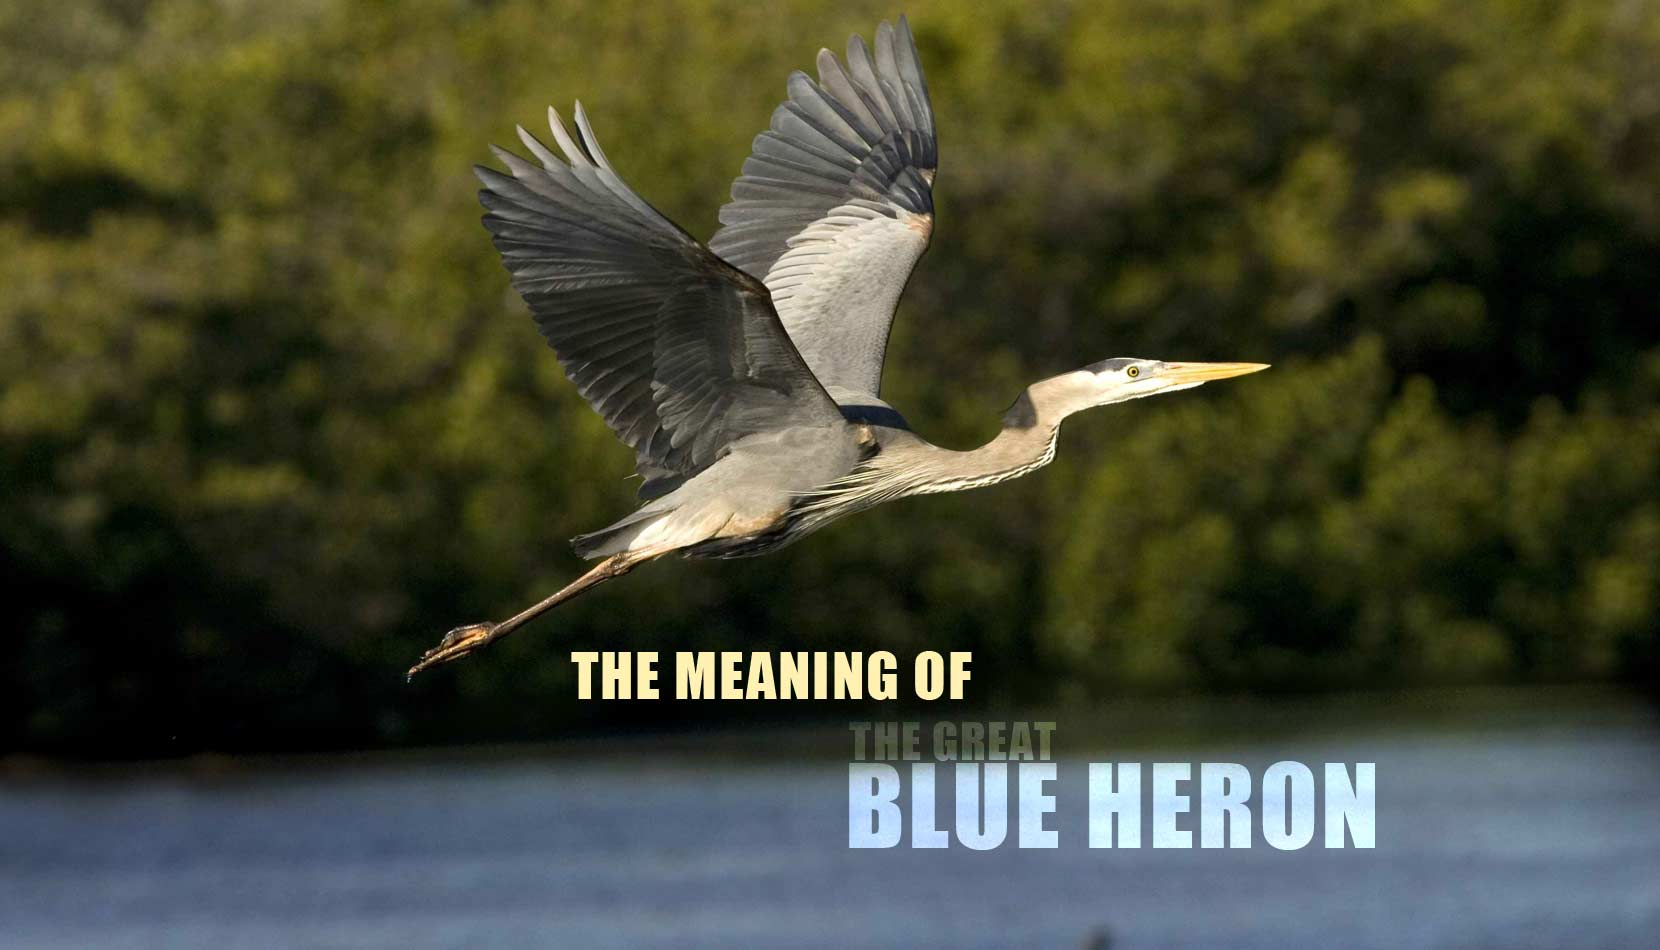 The meaning of the Great Blue Heron